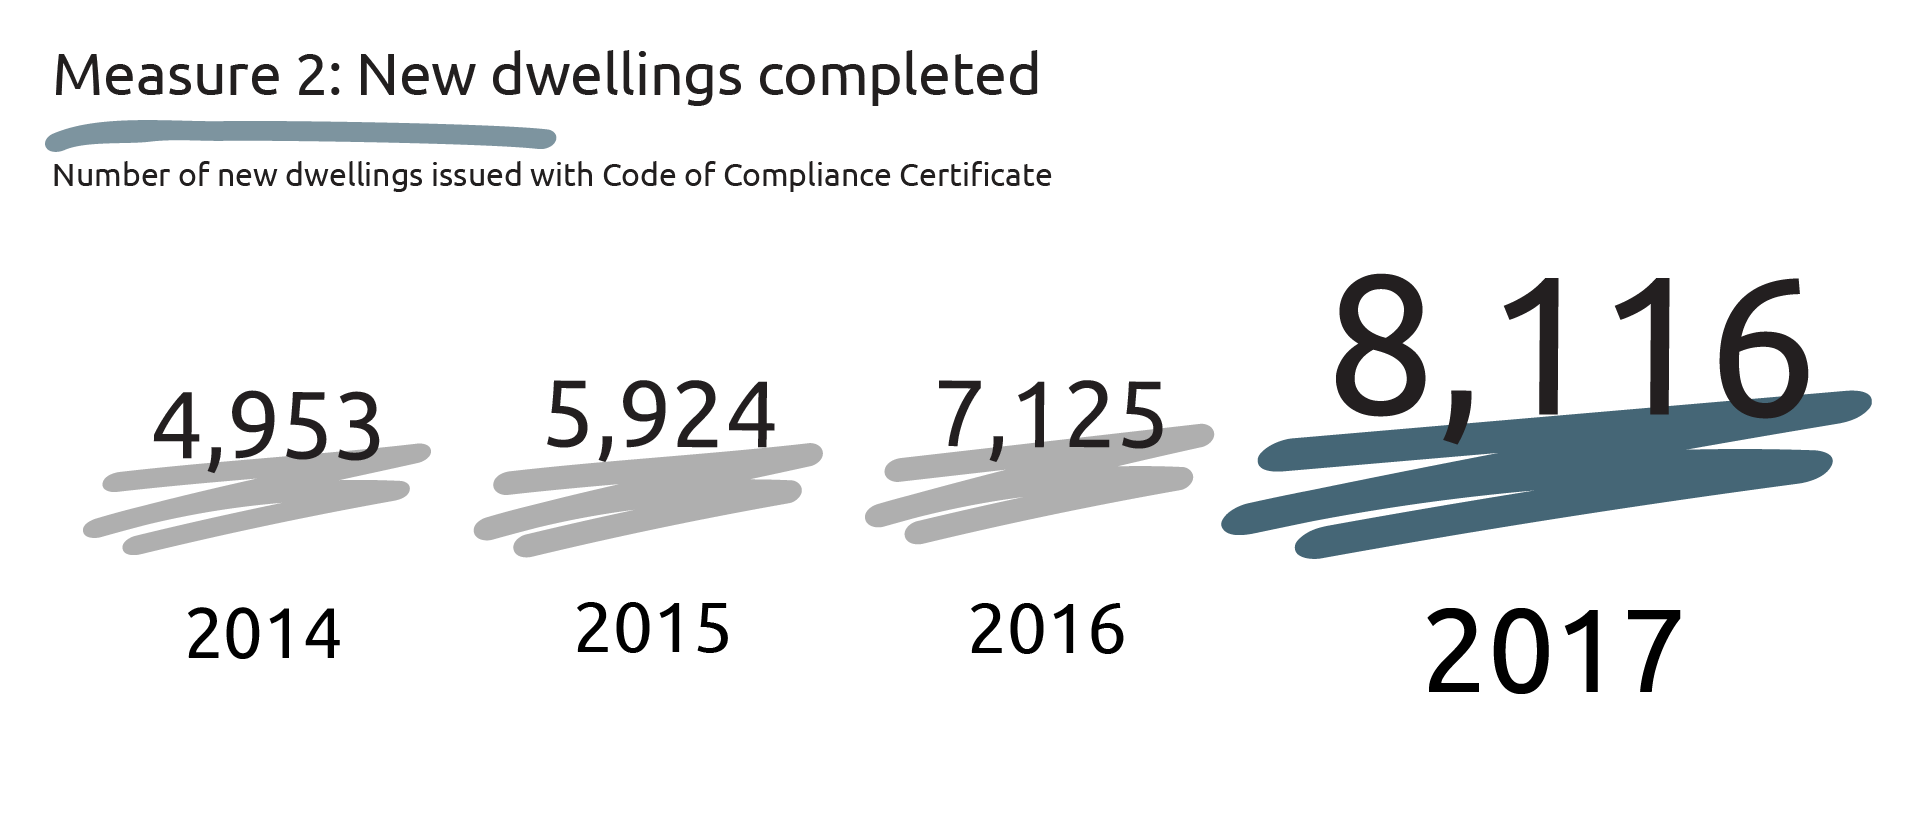 Graphic showing the number of new dwellings issues with Code of Compliance Certificate: 2014 - 4953, 2015 - 5924, 2016 - 7125 and 2017 - 8116.